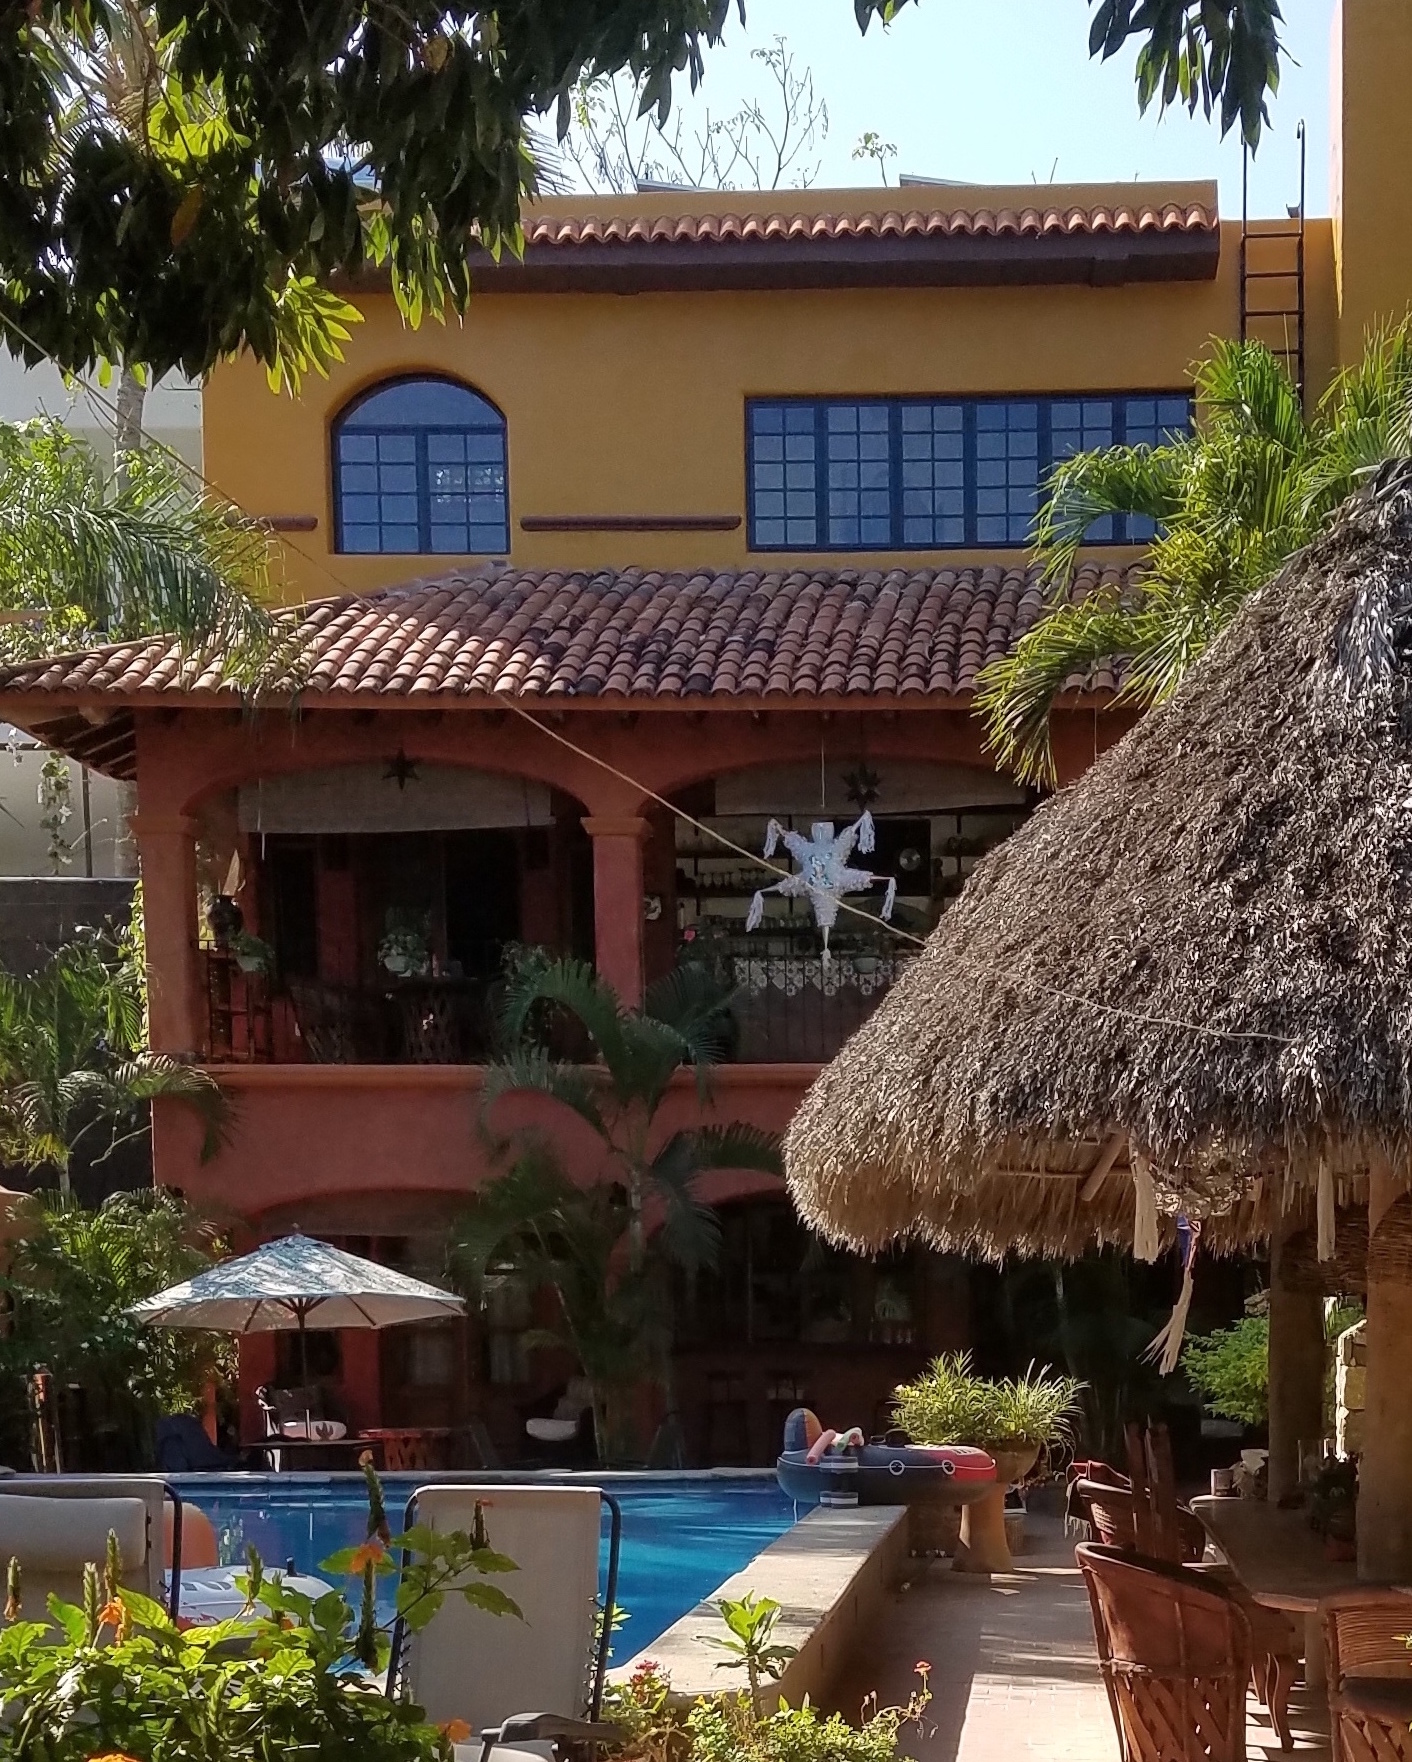 Casita Cielo Azul The Villa - 3 Story House5 Bedrooms4 Bathrooms2 Full Kitchens,, 1 Kitchenette,, 1 grill KitchenMultiple Dining Areas20' x 40' PoolSleeps 10+